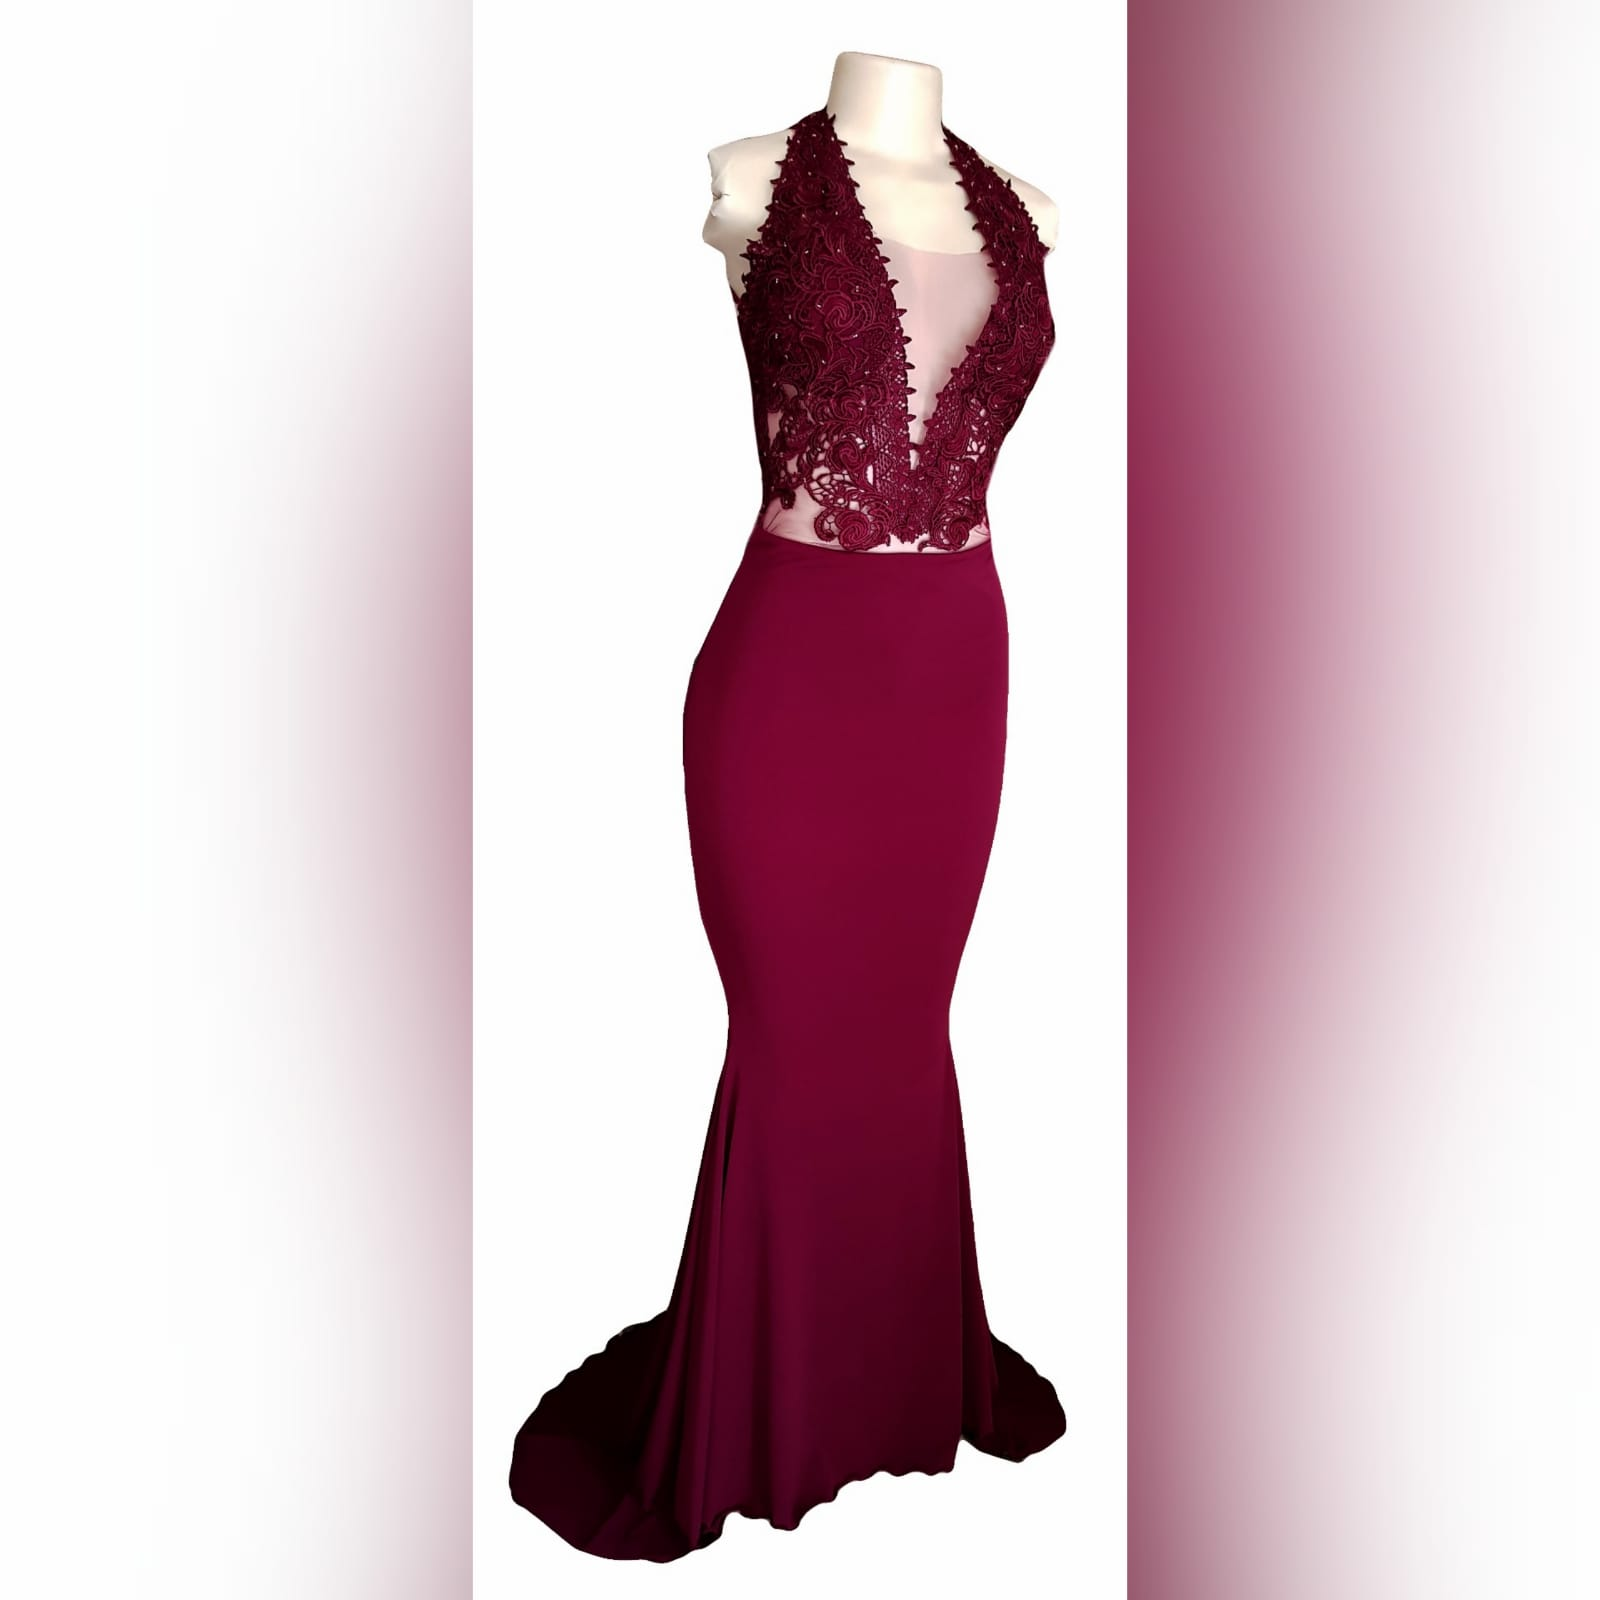 Burgundy illusion bodice soft mermaid prom dress 7 burgundy illusion bodice, soft mermaid prom dress. With a plunging neckline, low v open back with crossed straps detailed with gold beads.